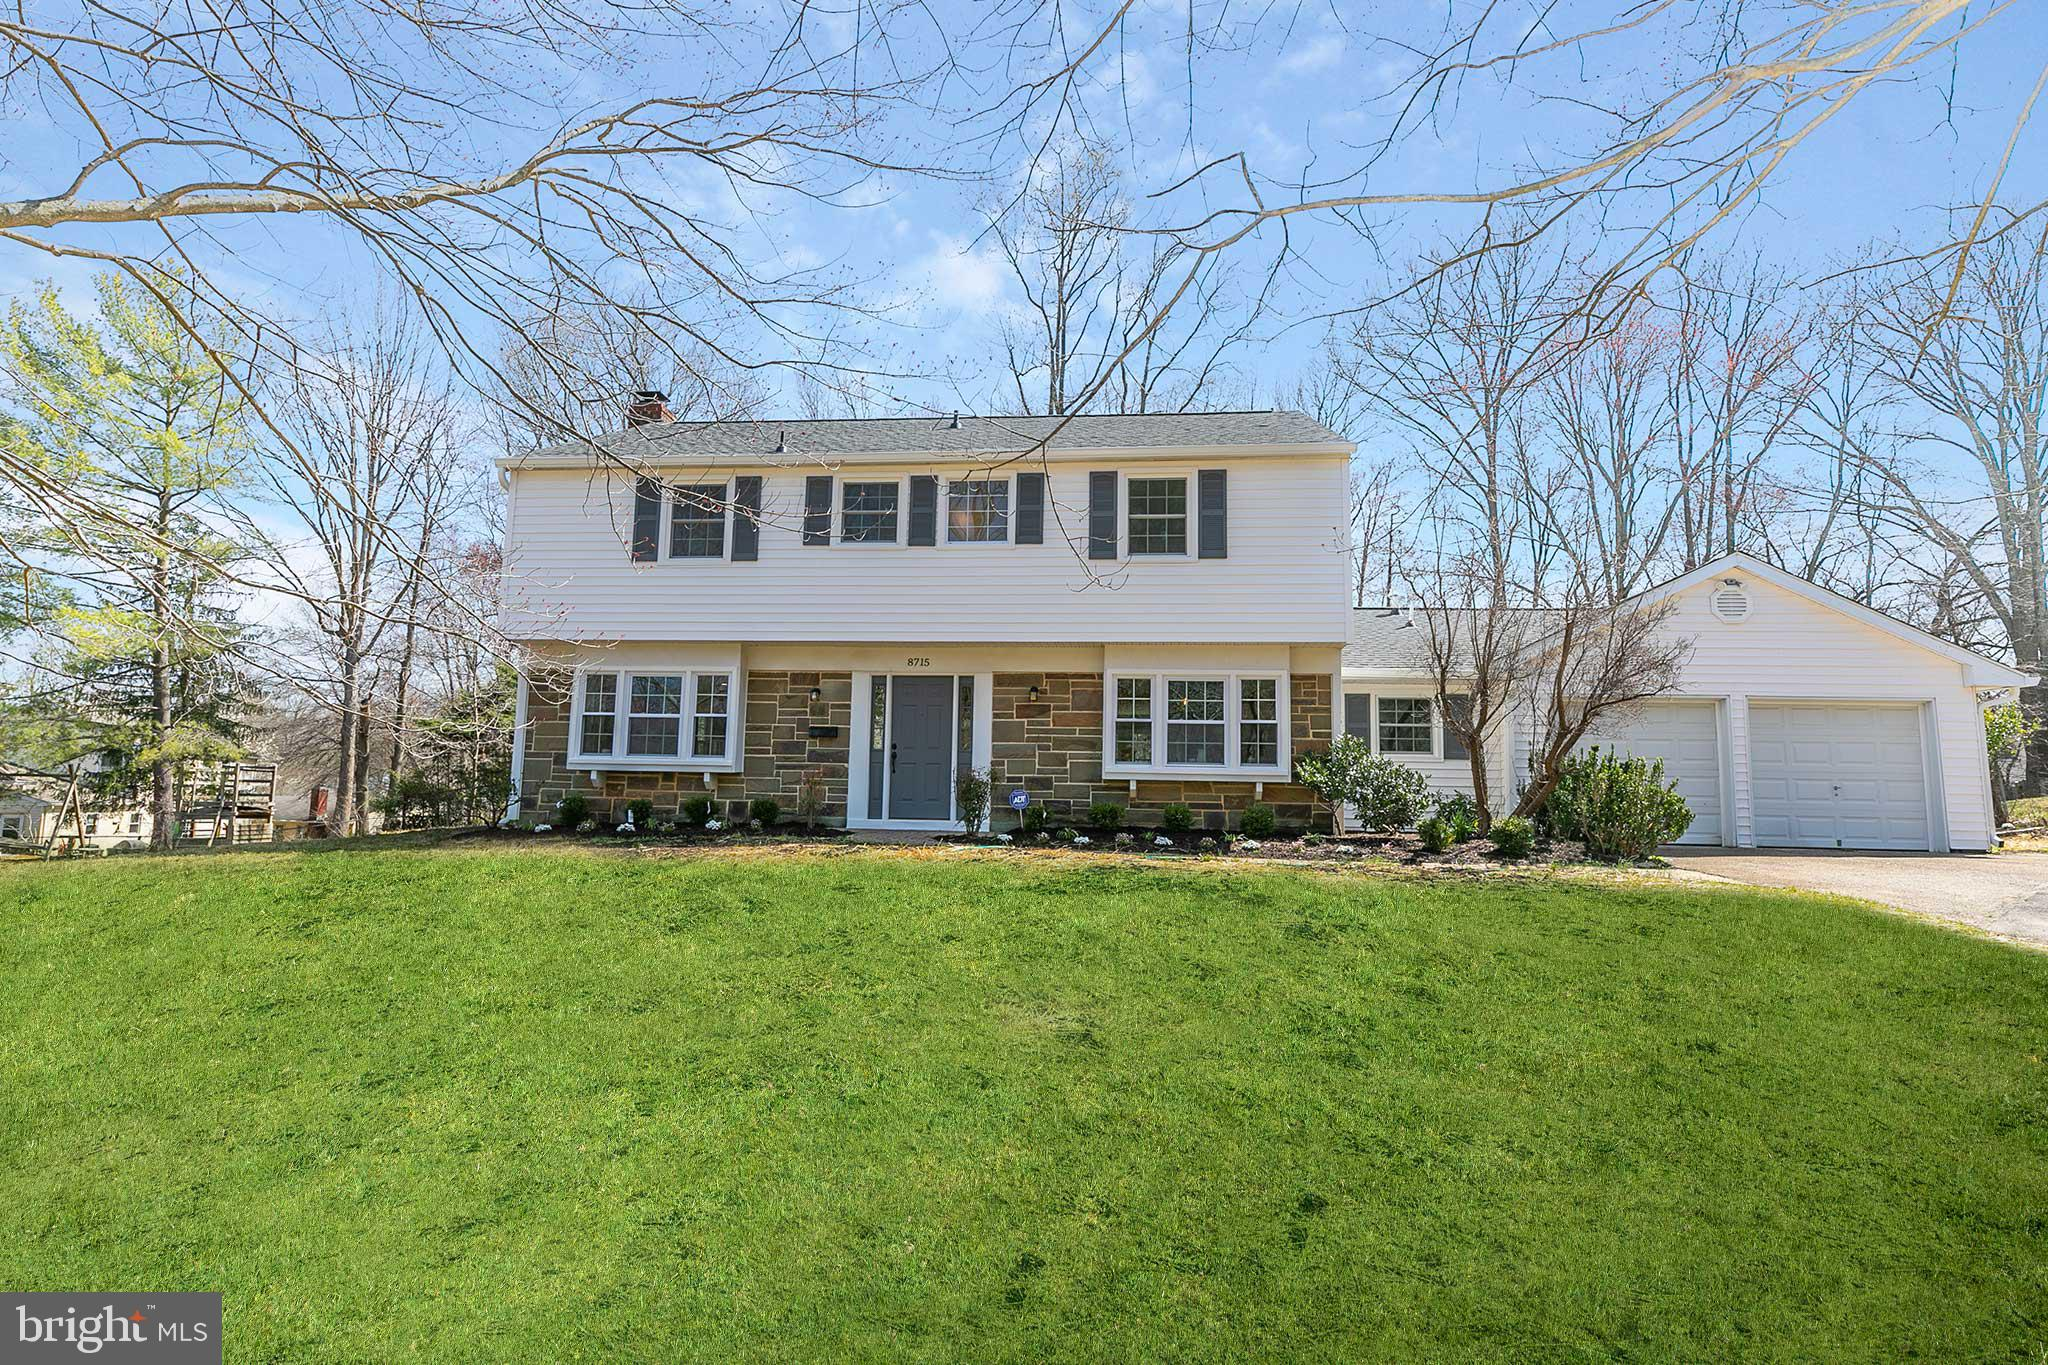 8715 CRESTMONT LANE, LAUREL, MD 20708